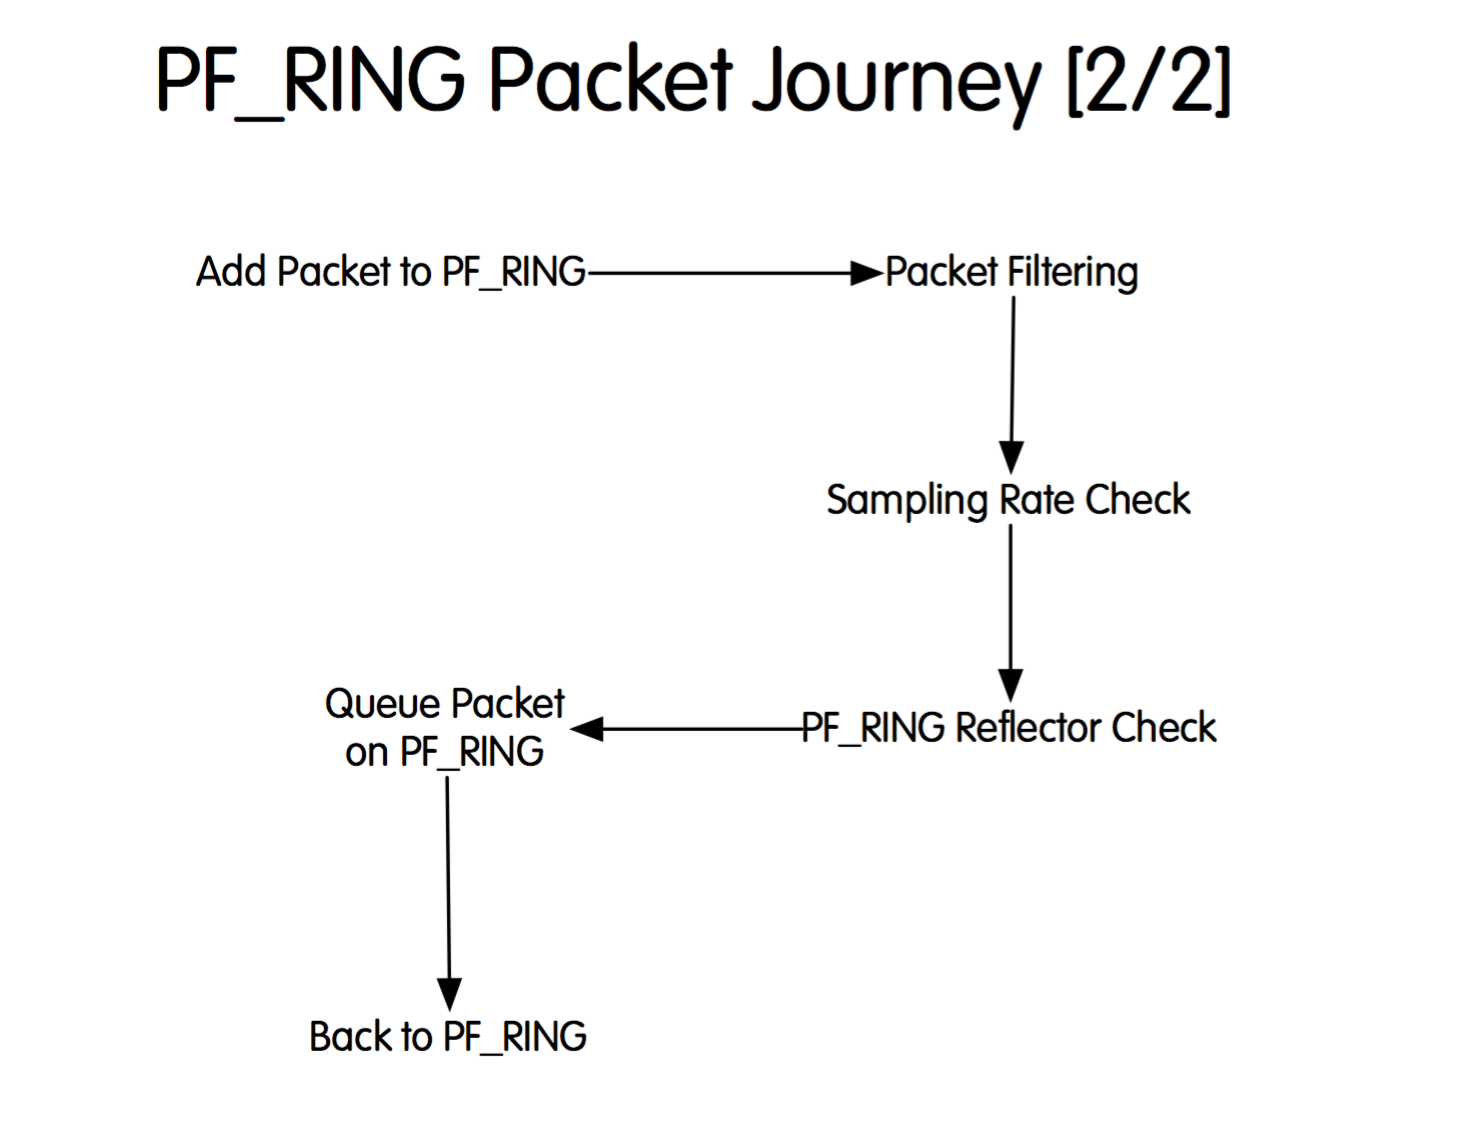 PF_RING Packet Journey - 2